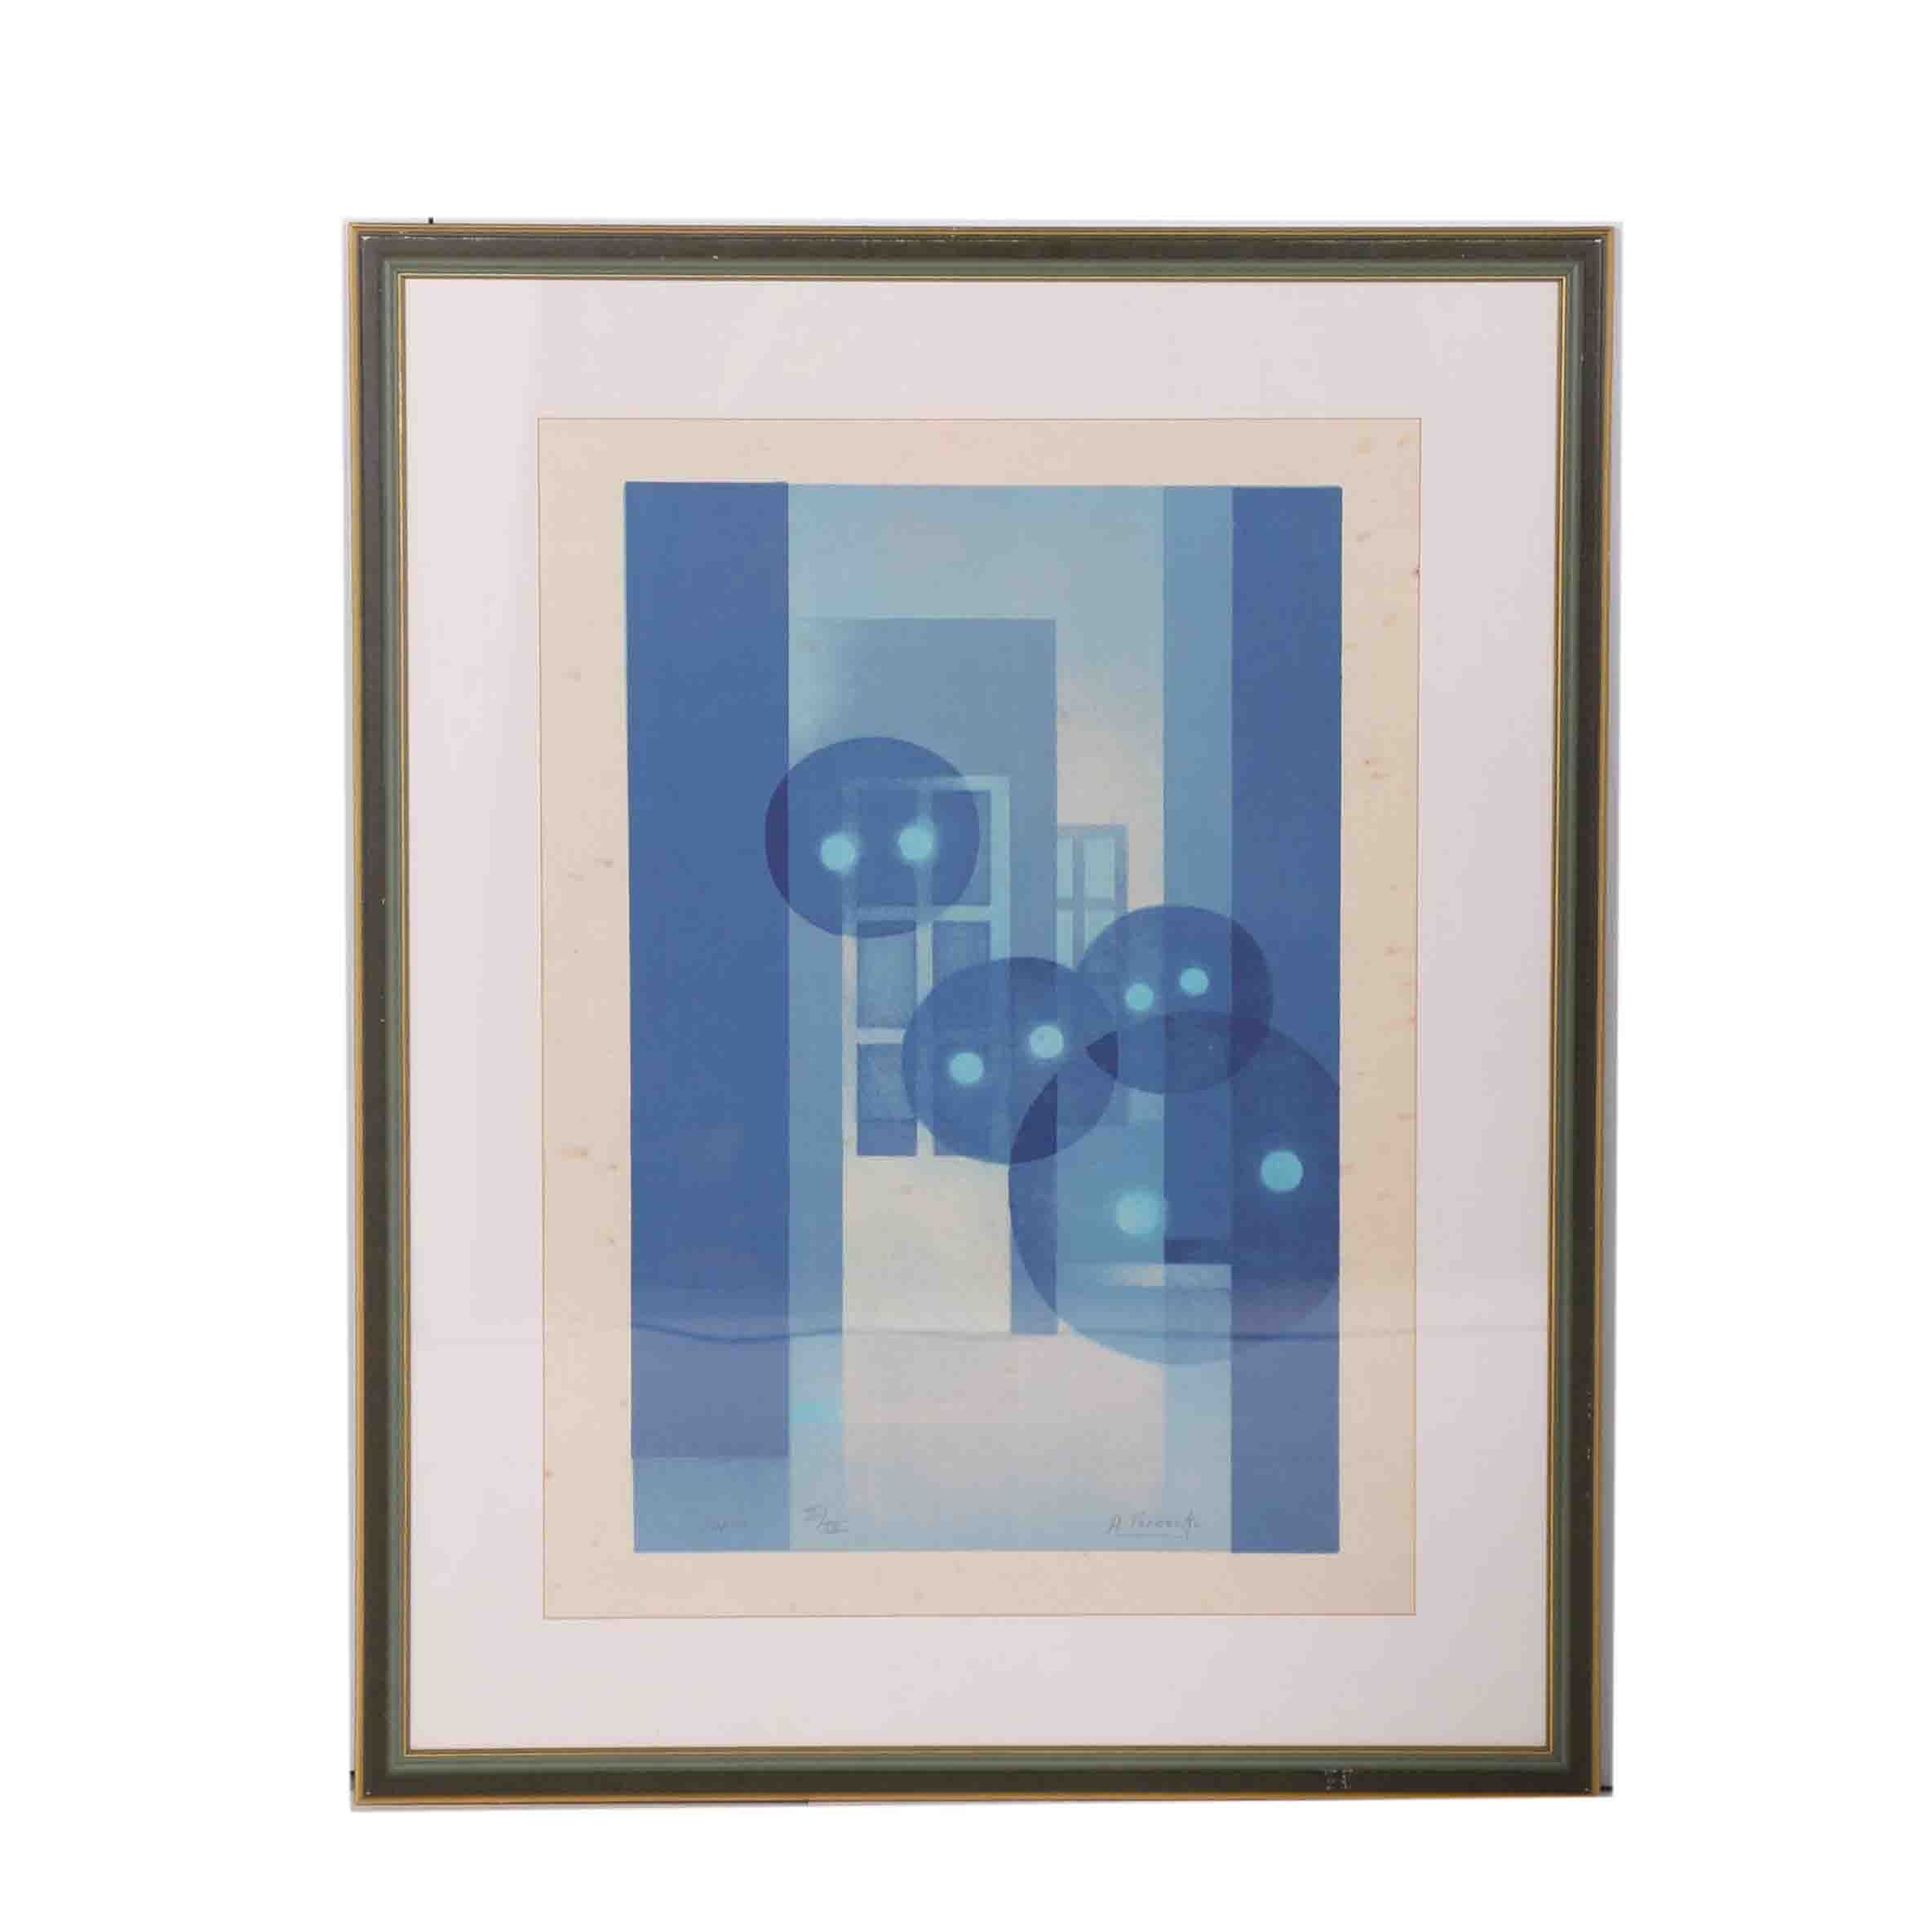 Amand Vereecke Limited Edition Lithograph on Rice Paper